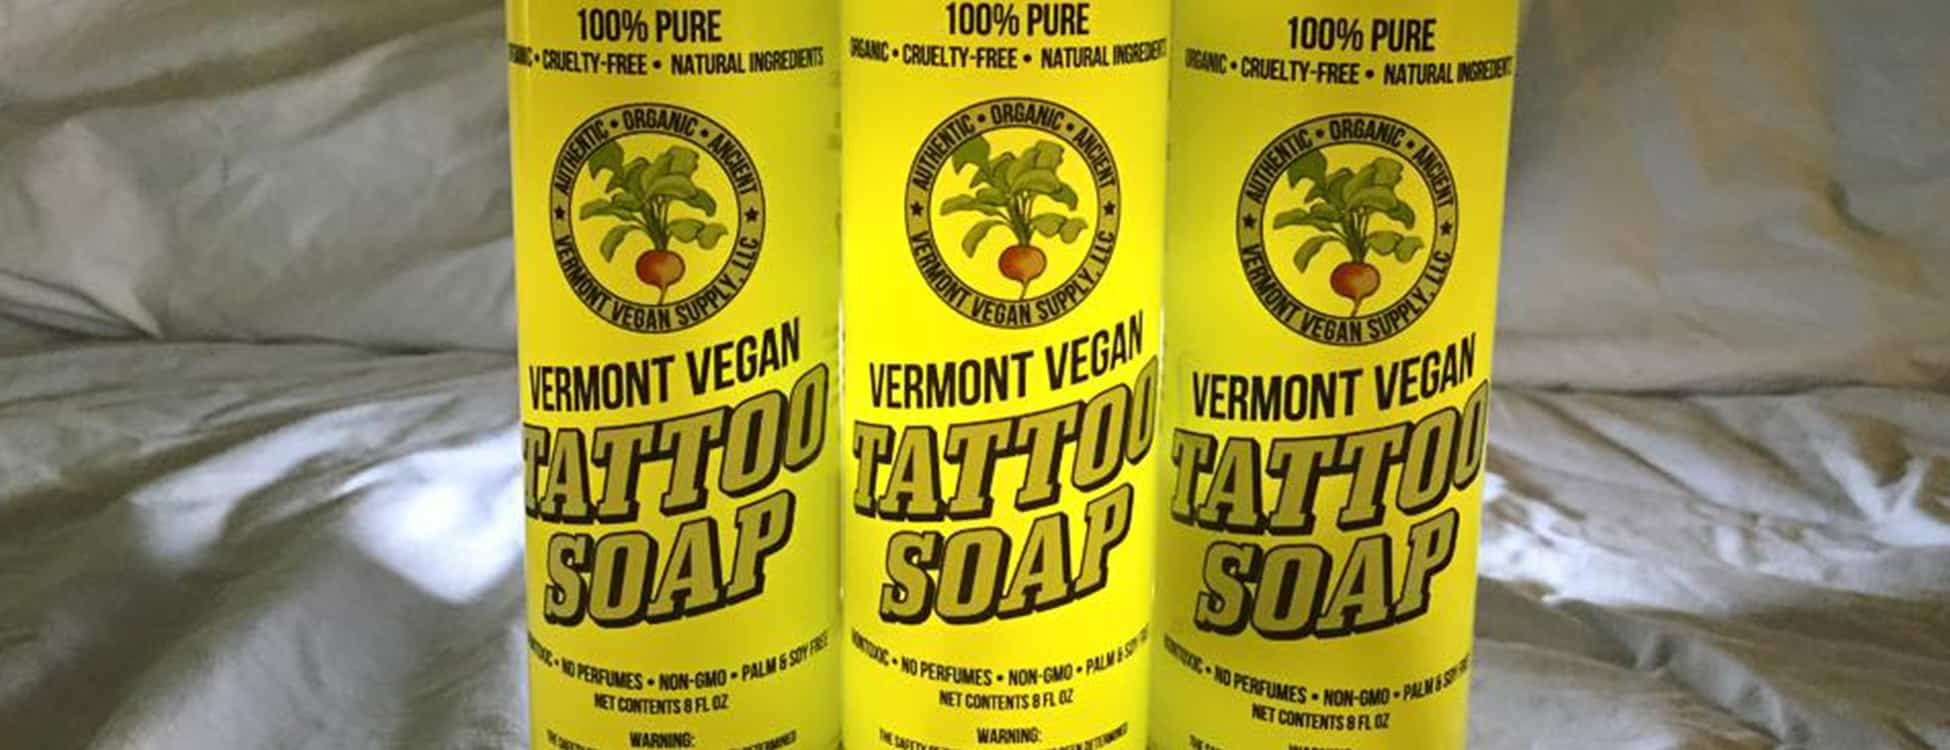 Vermont vegan tattoo soap